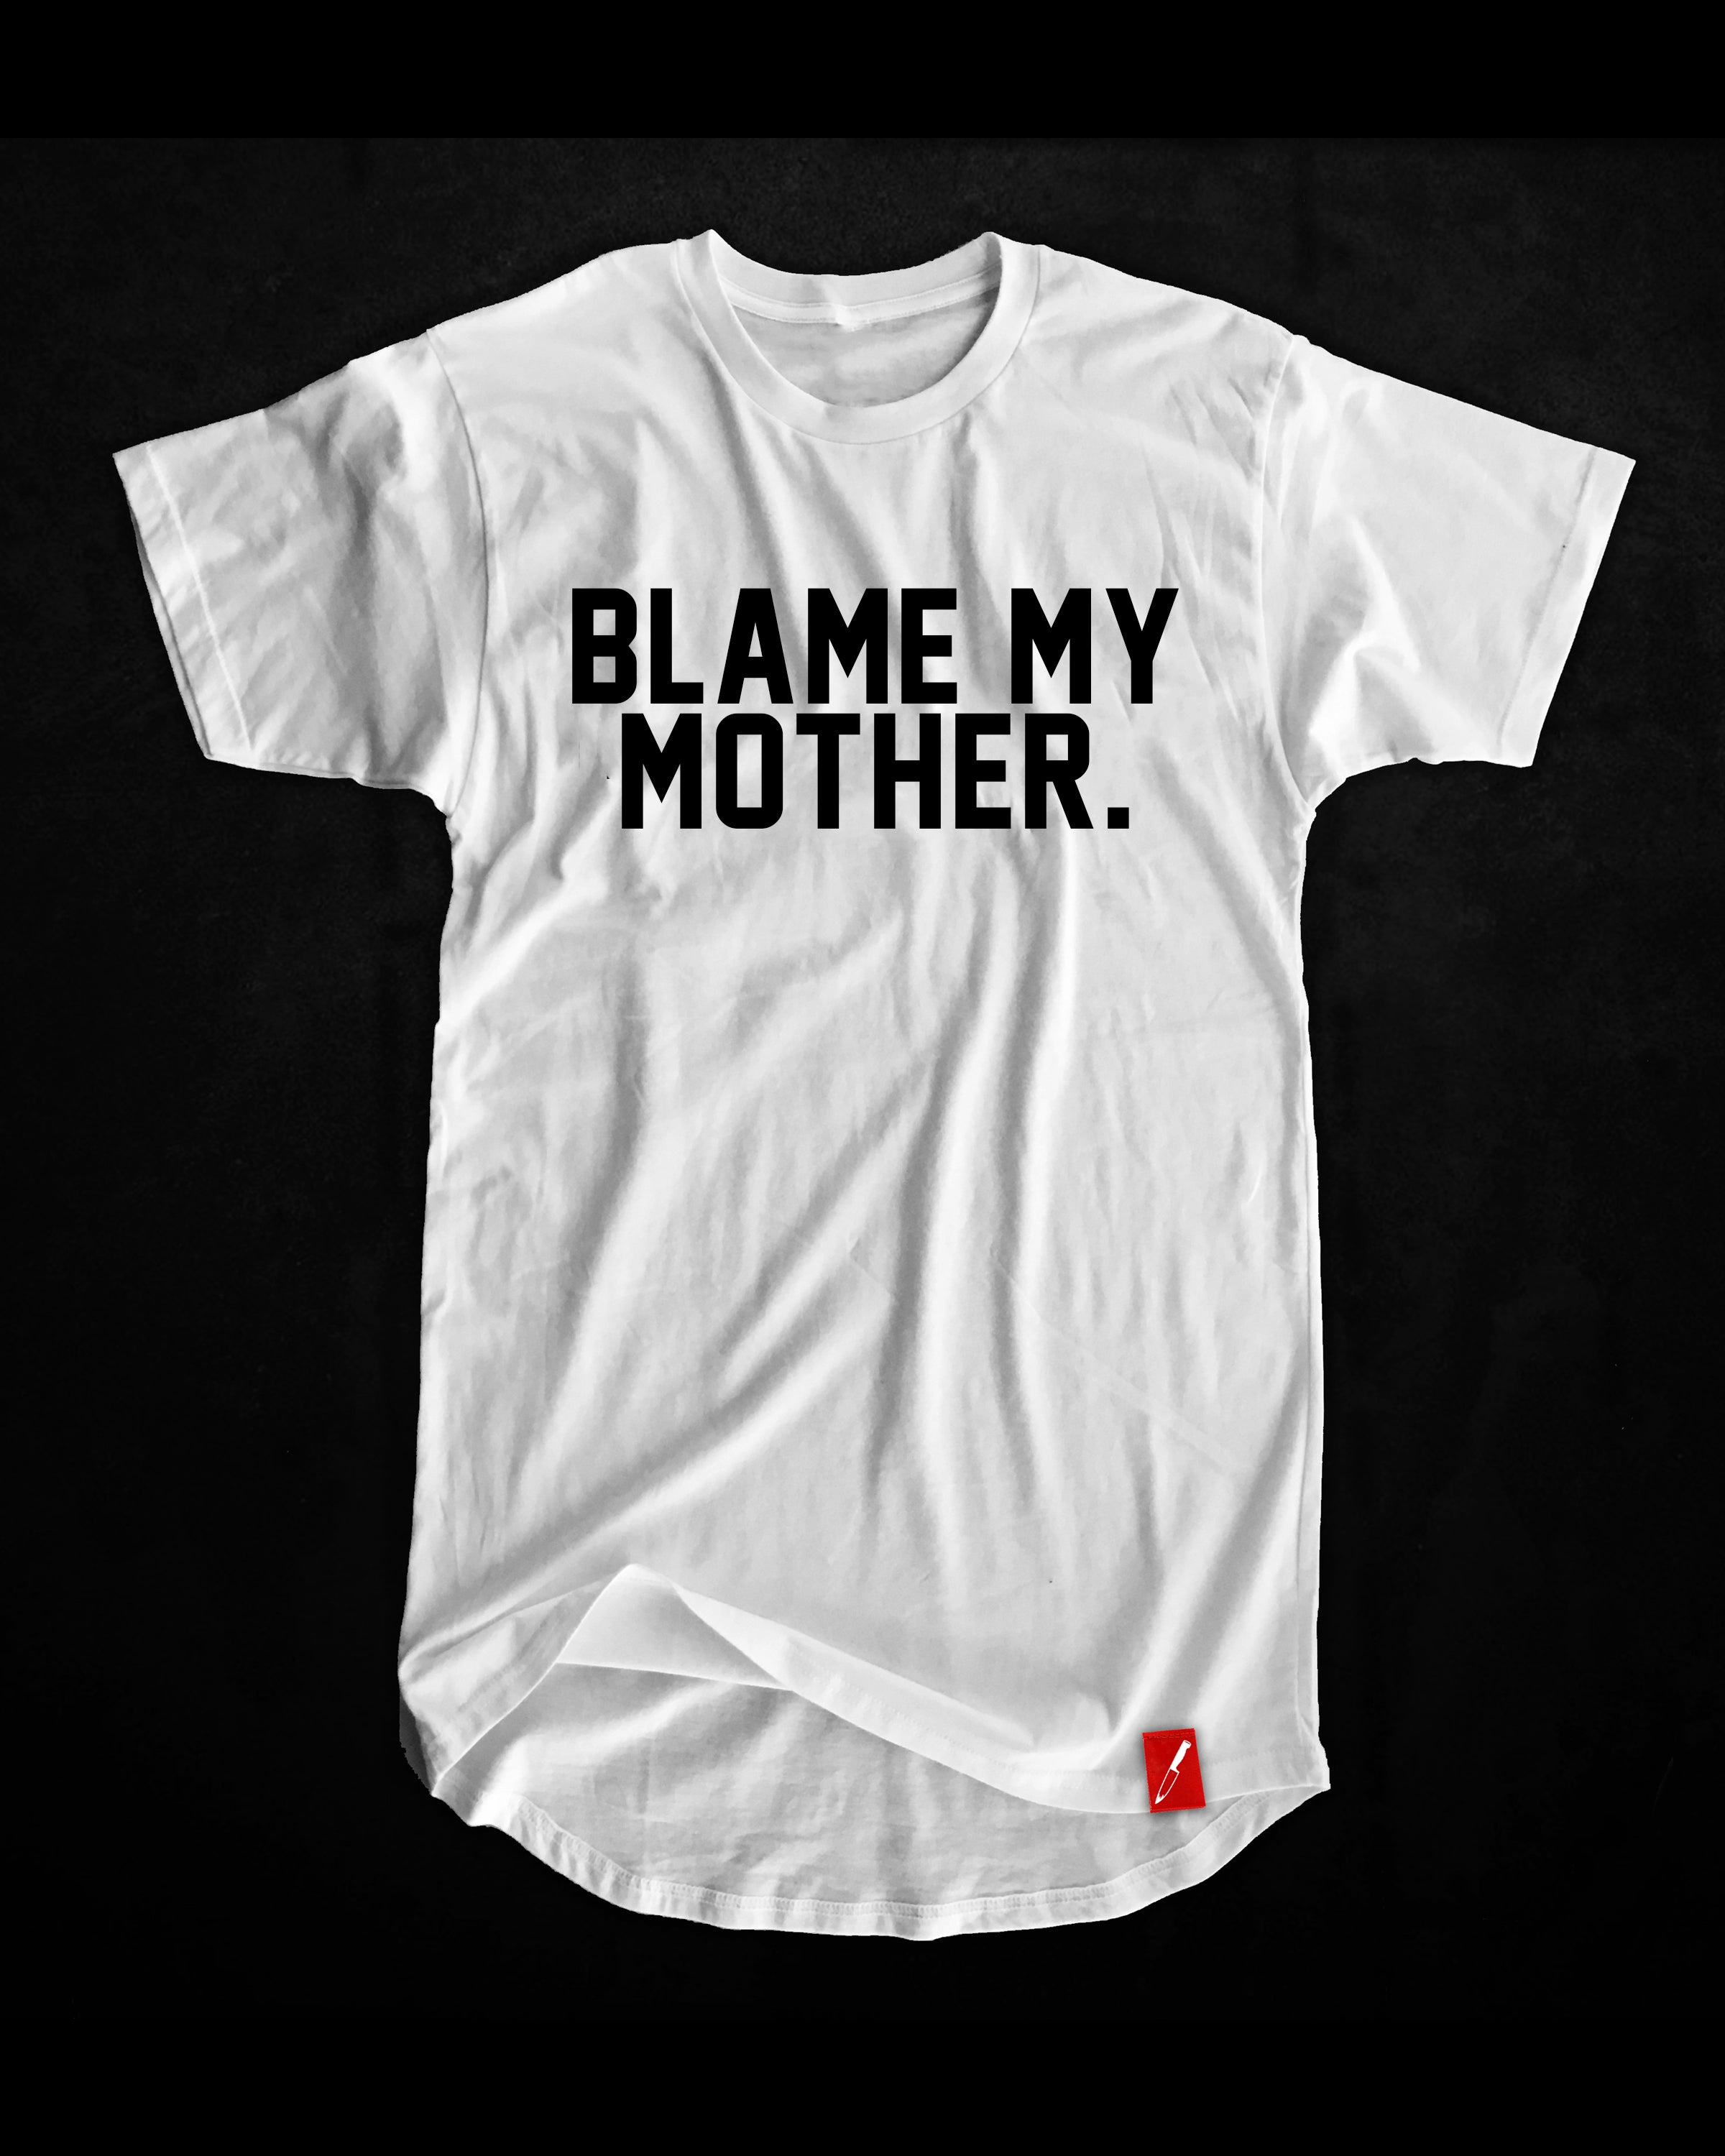 BLAME MY MOTHER.